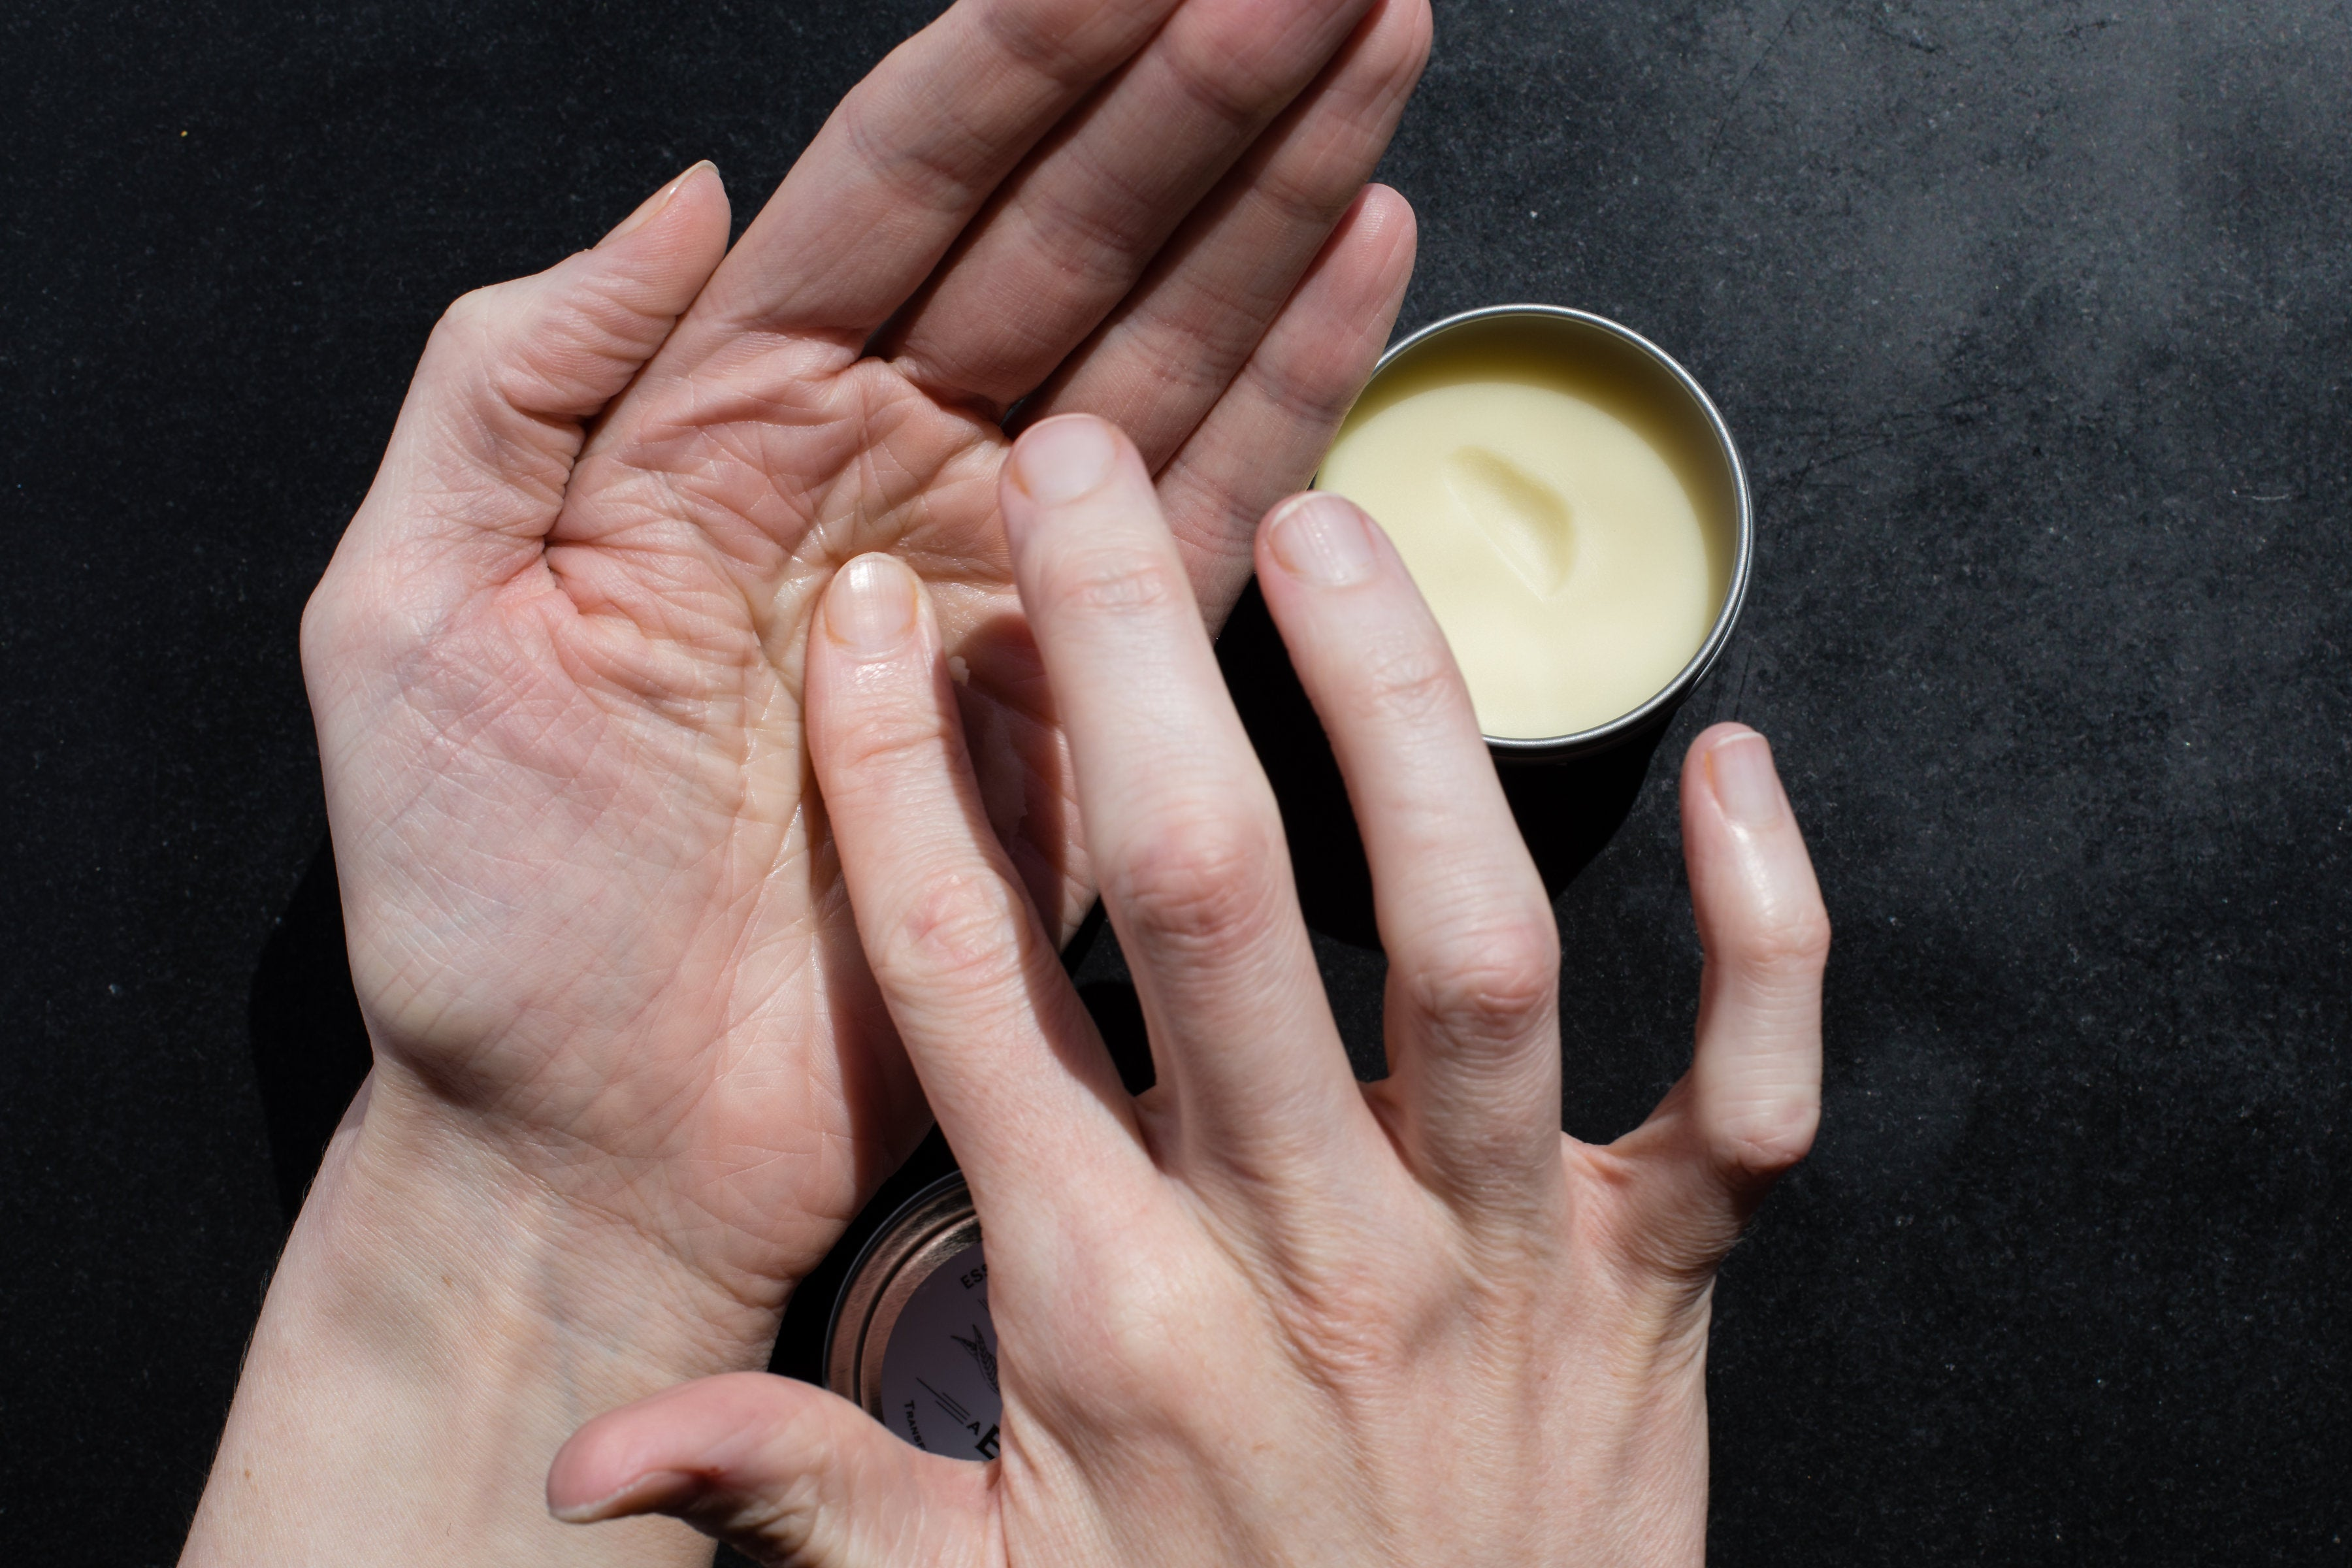 Warm Behave Wax Salve in your palm before use